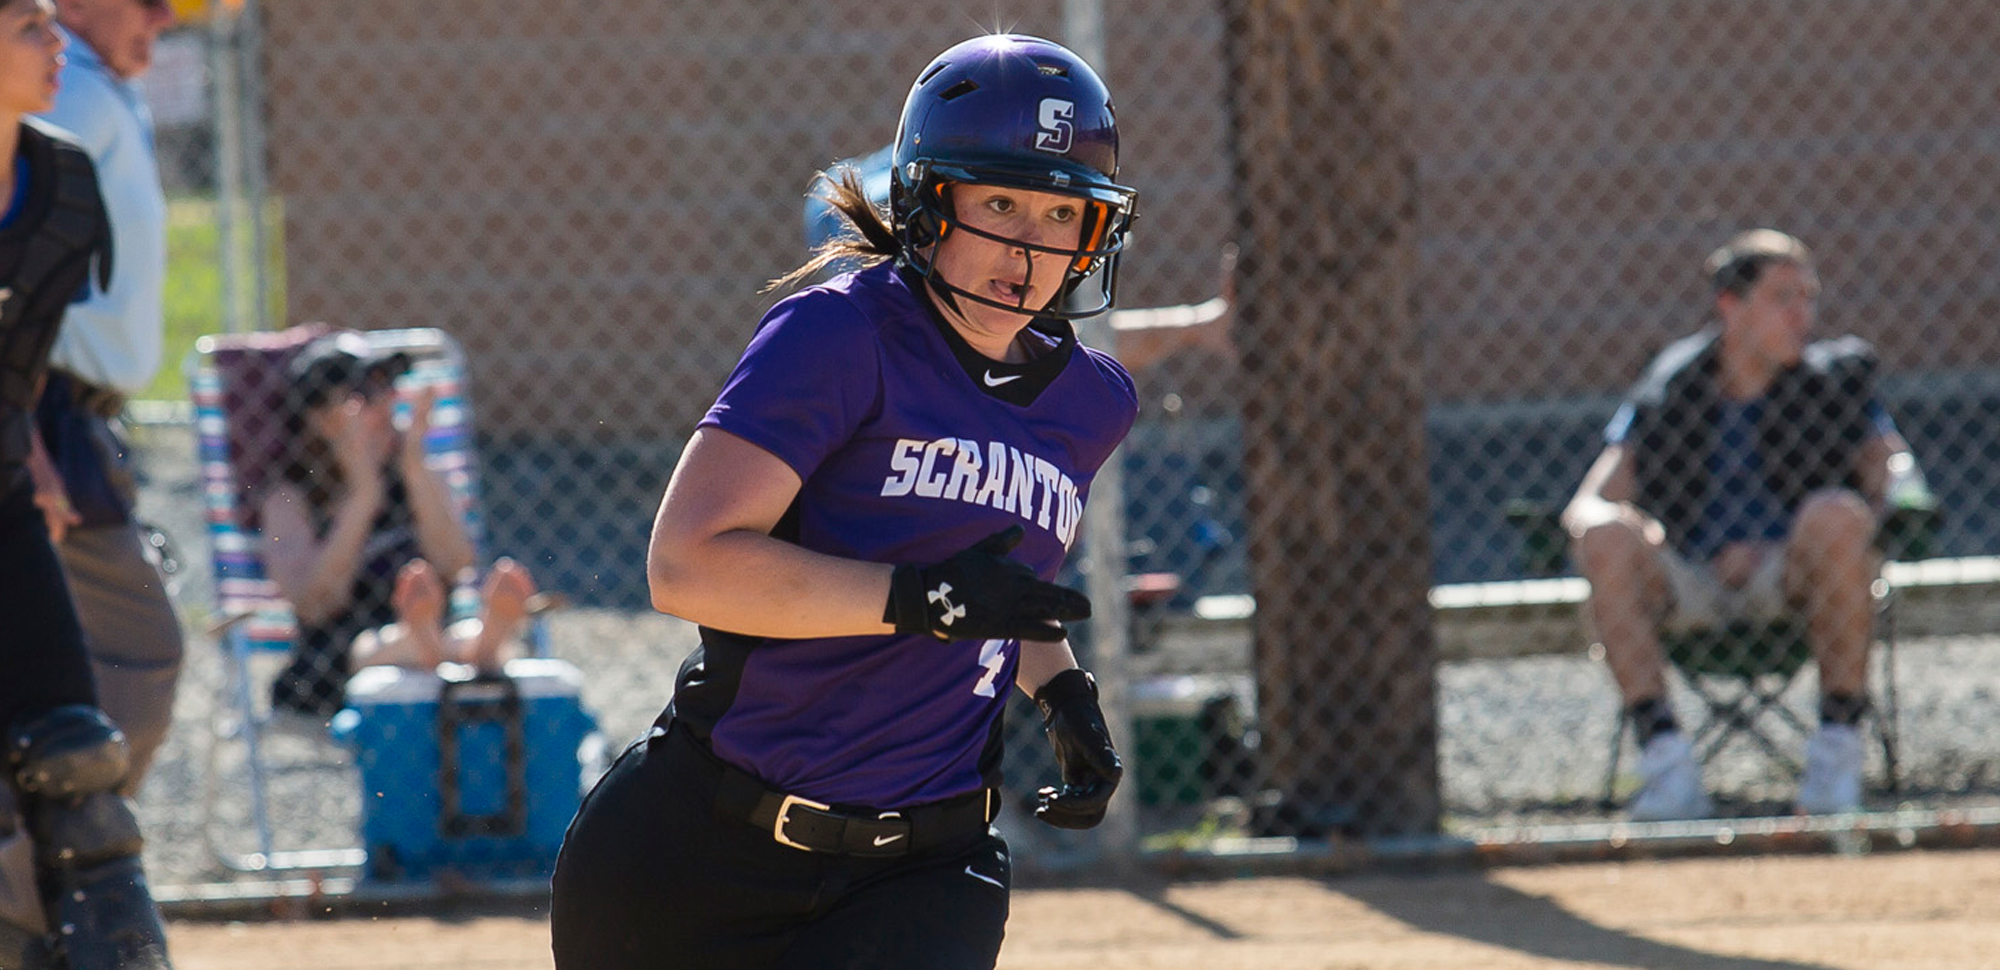 Senior Shannon Stricker went a combined 6-for-7 with five RBI, as the University of Scranton softball team bested Penn State Hazleton in a pair of games on Thursday at the Jessup Youth Sports Complex.